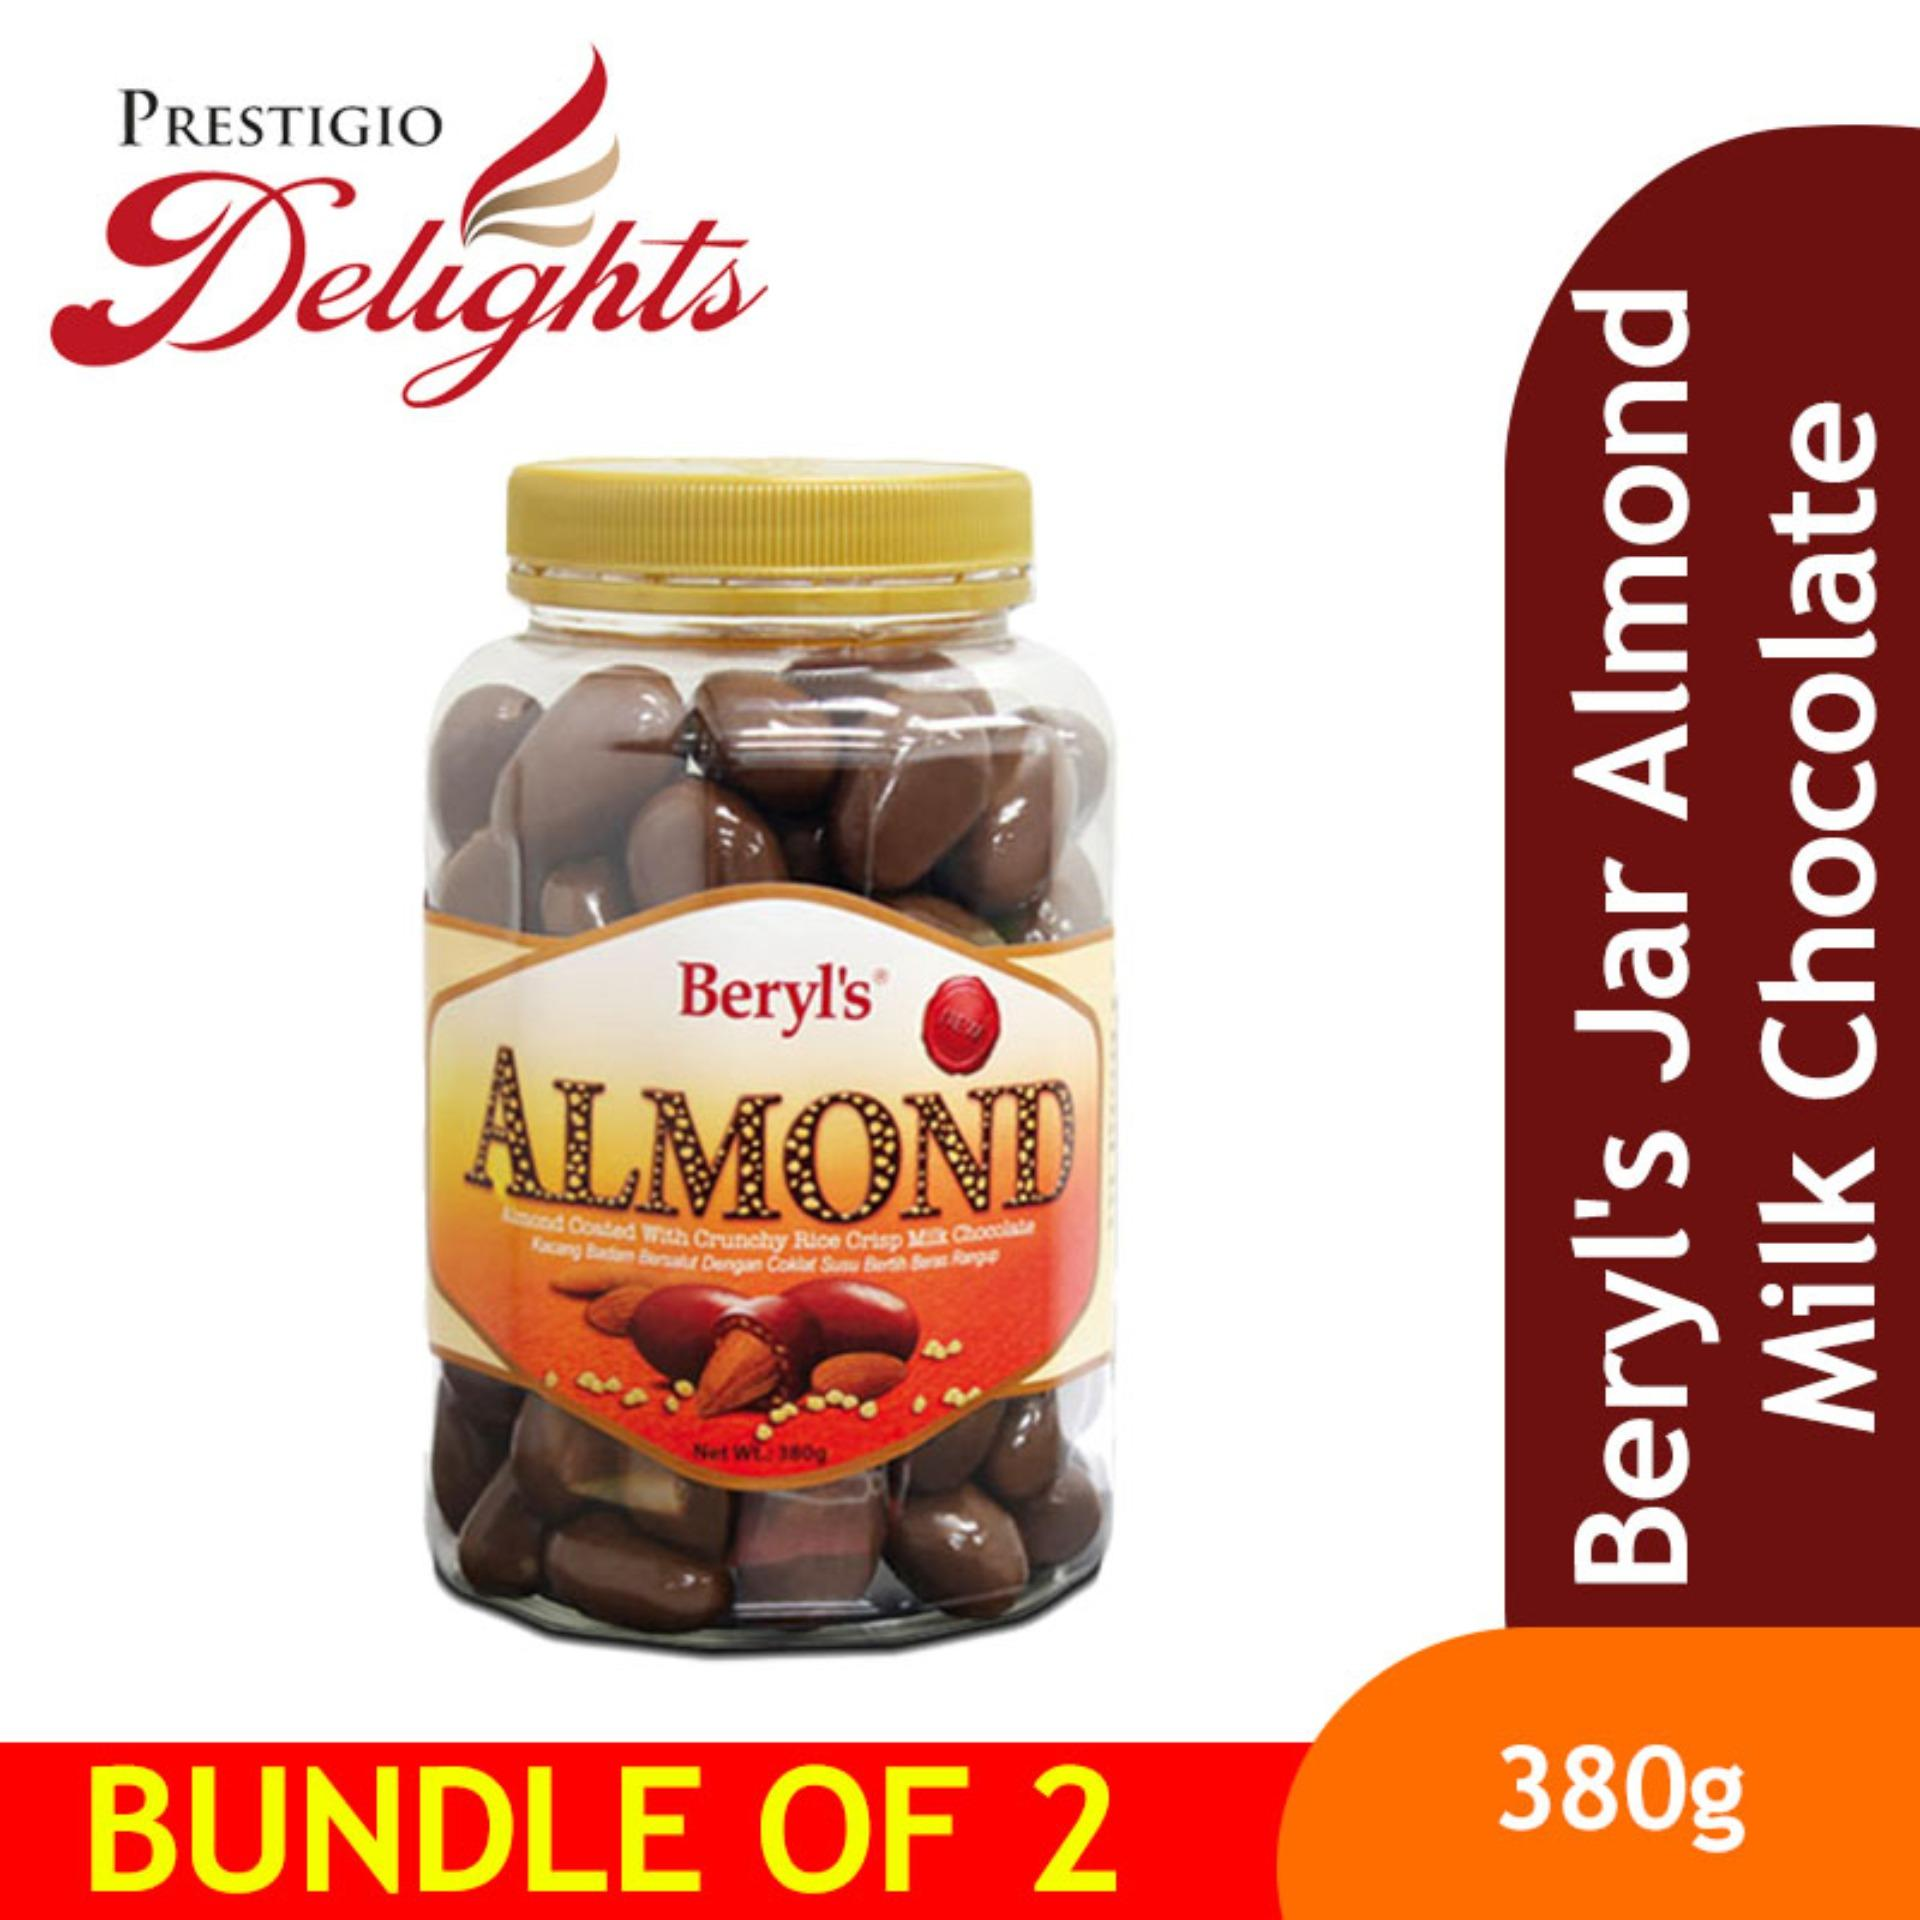 Beryls Jar Almond Milk Chocolate Bundle Of 2 By Prestigio Delights.